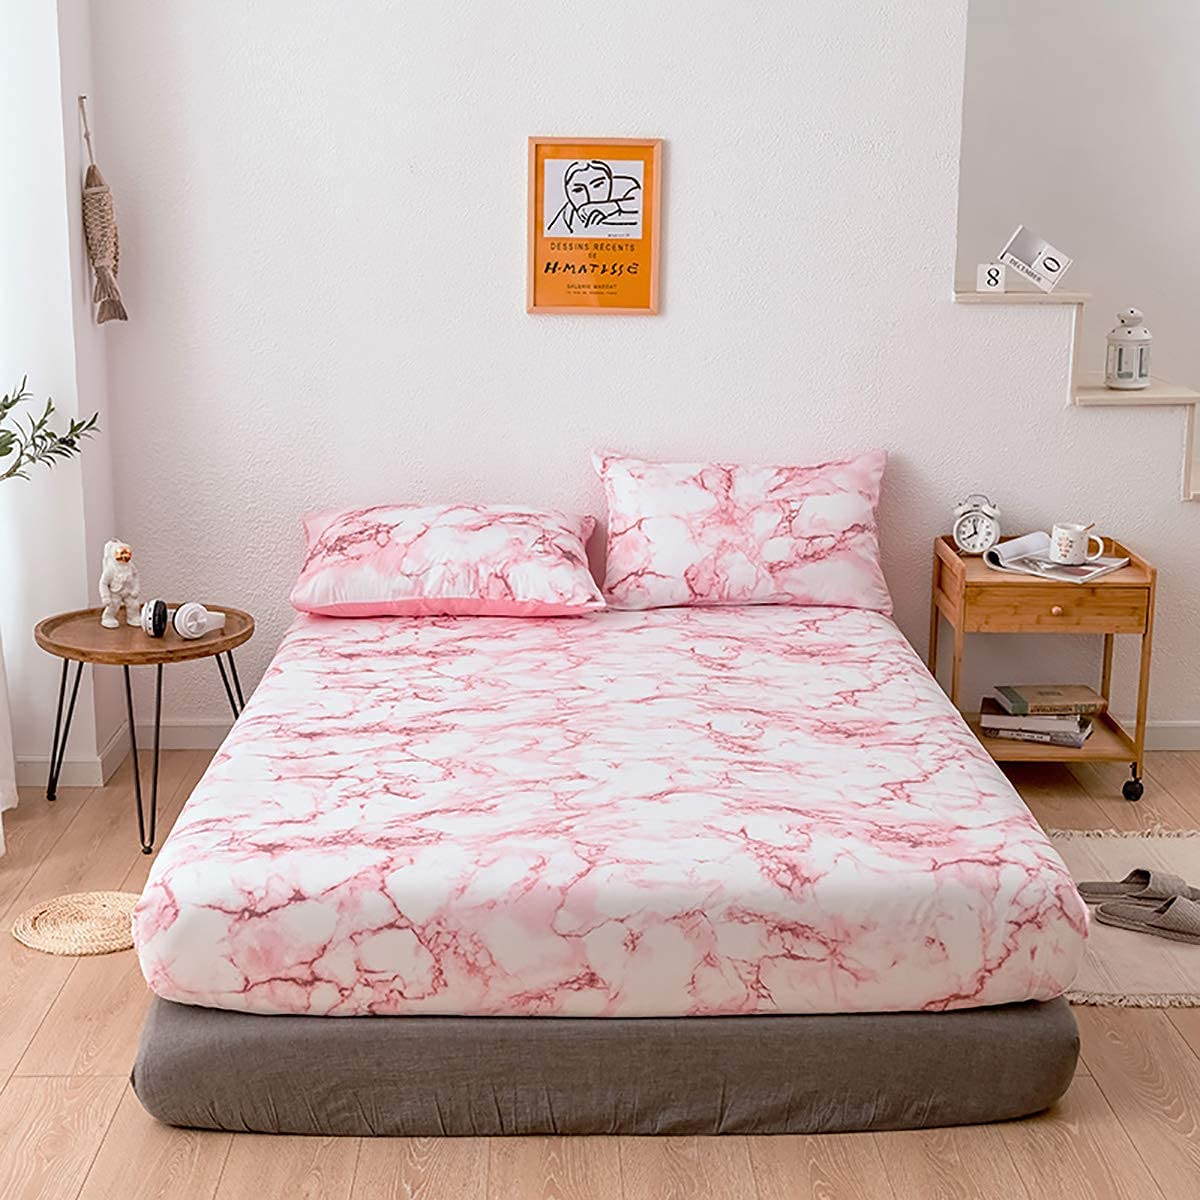 WUJIE Pink Marble Sheets for Full Size Bed Deep Pockets Fitted Sheet and Pillowcase Set Soft Sheets (1 Fitted Sheet,2 Pillowcases)